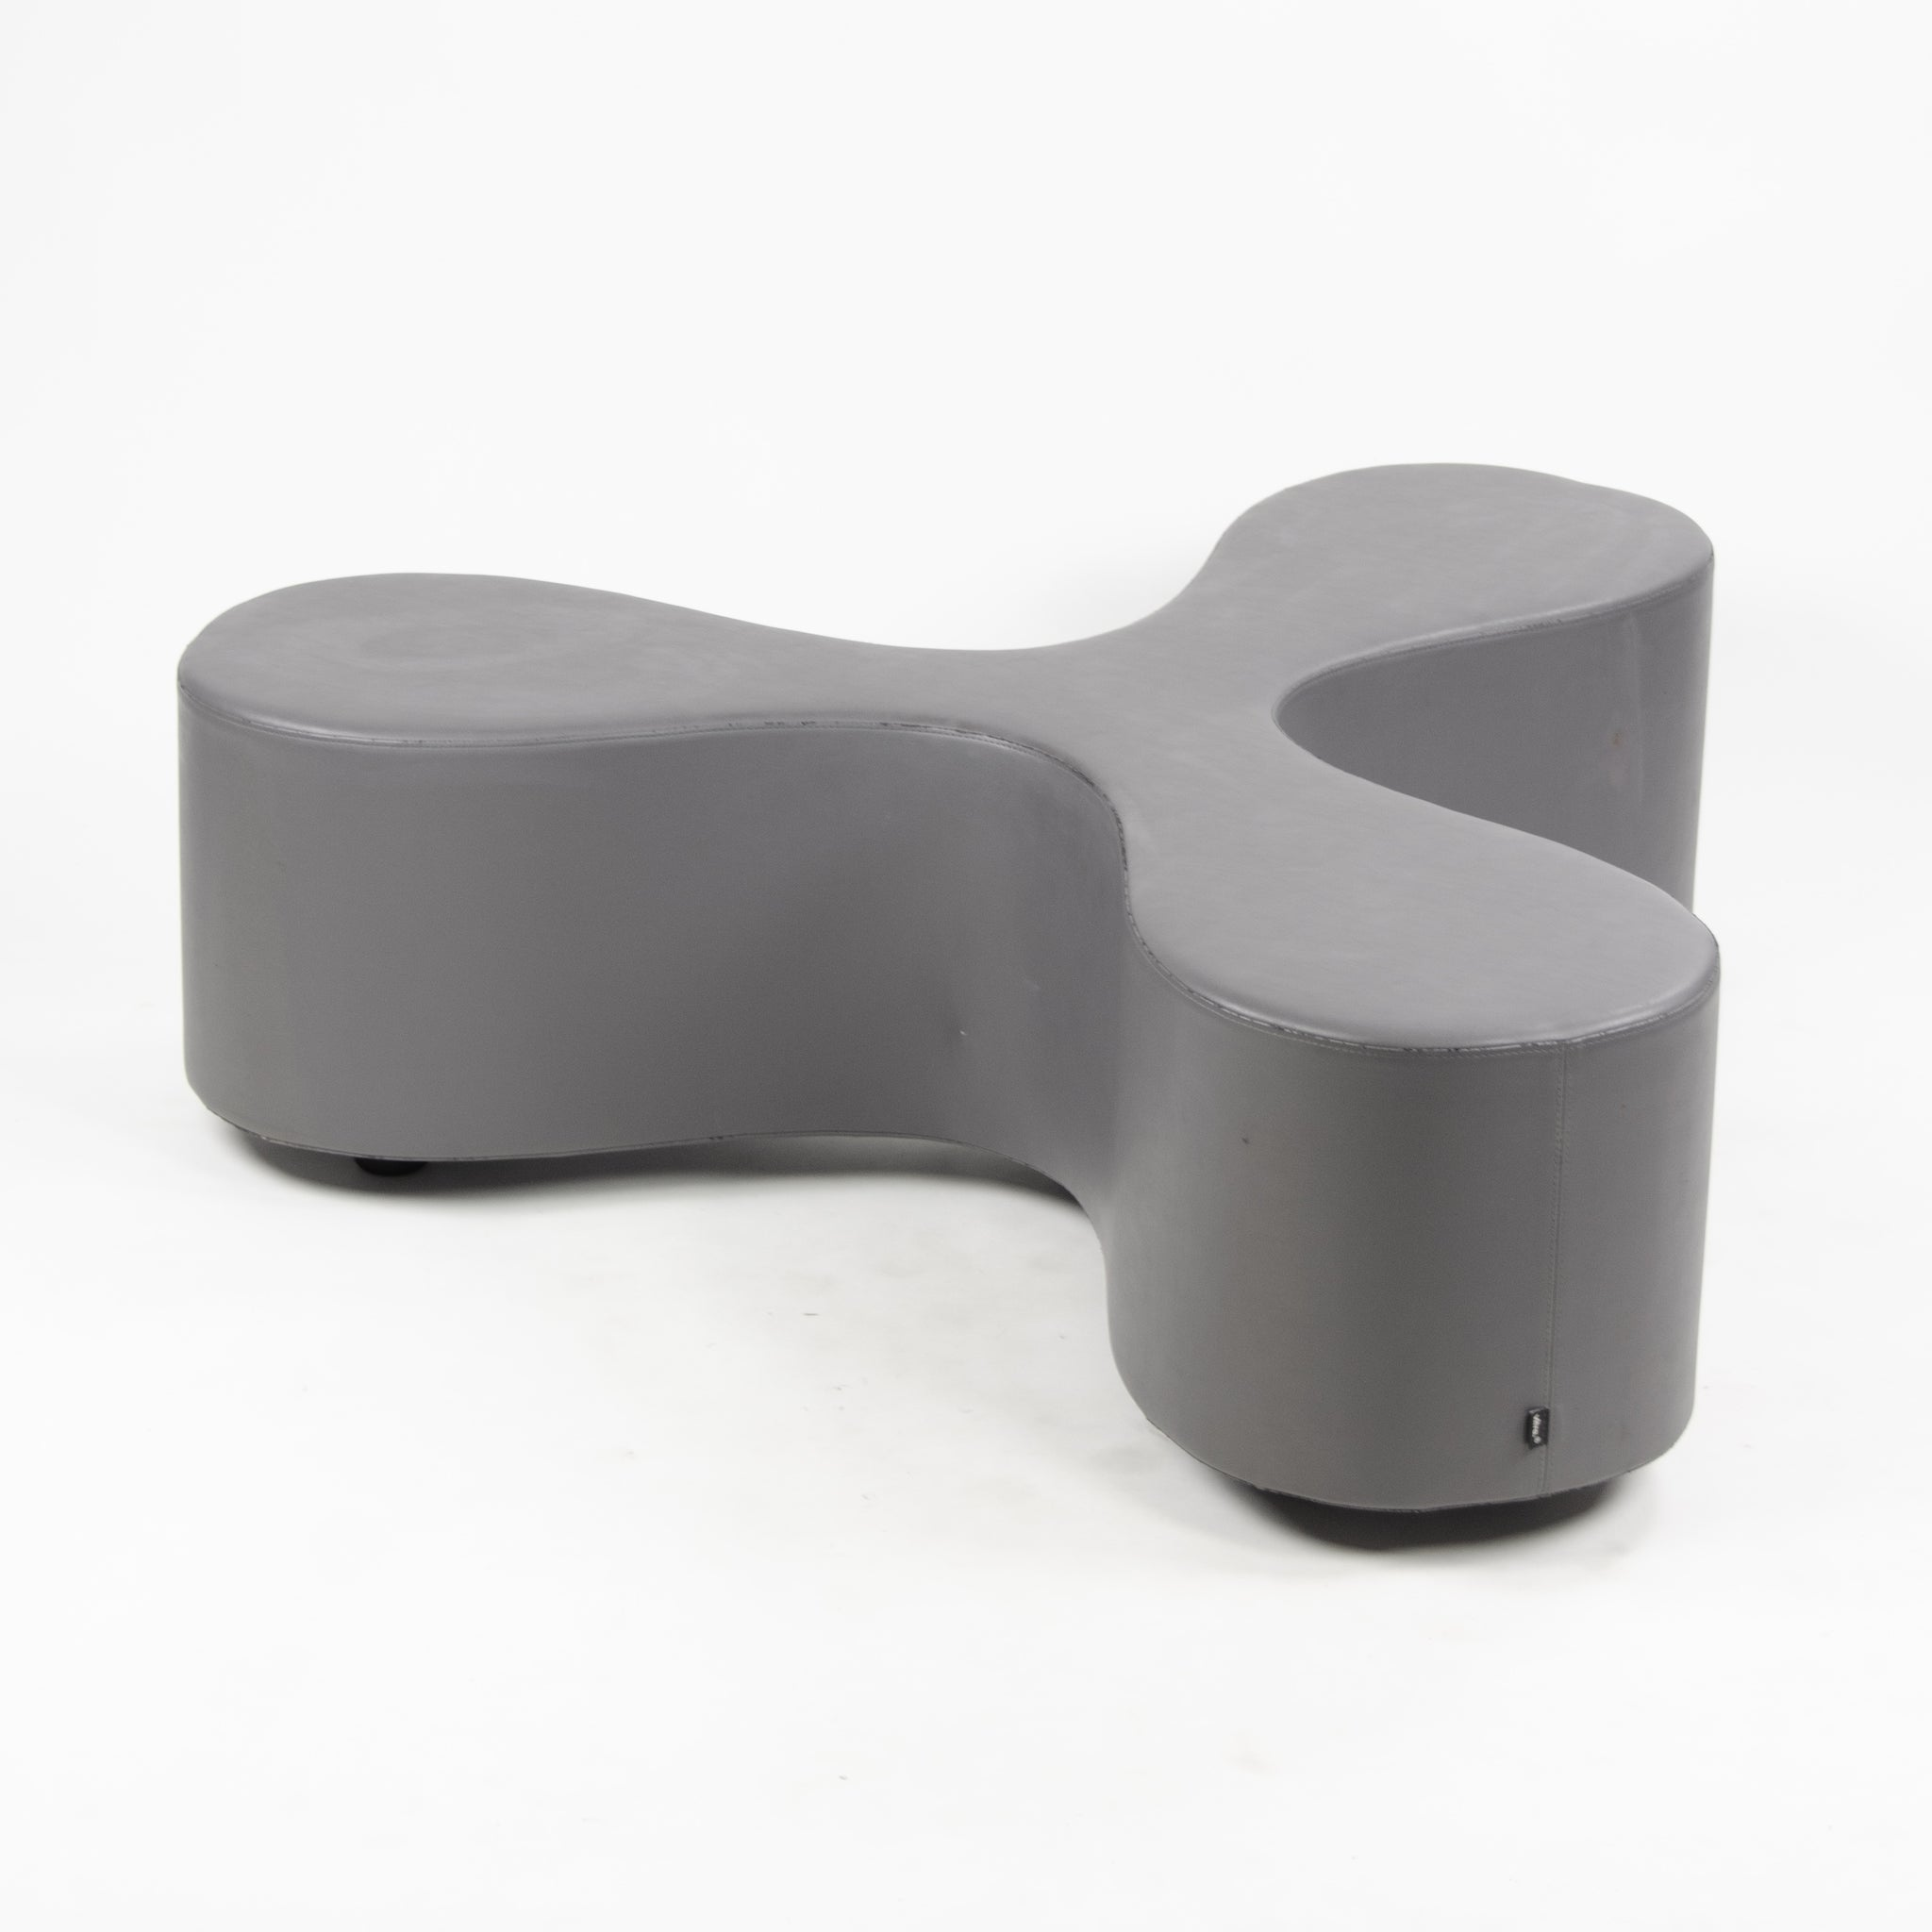 SANAA for Vitra Flower Bench with Gray Upholstery, 4 Available